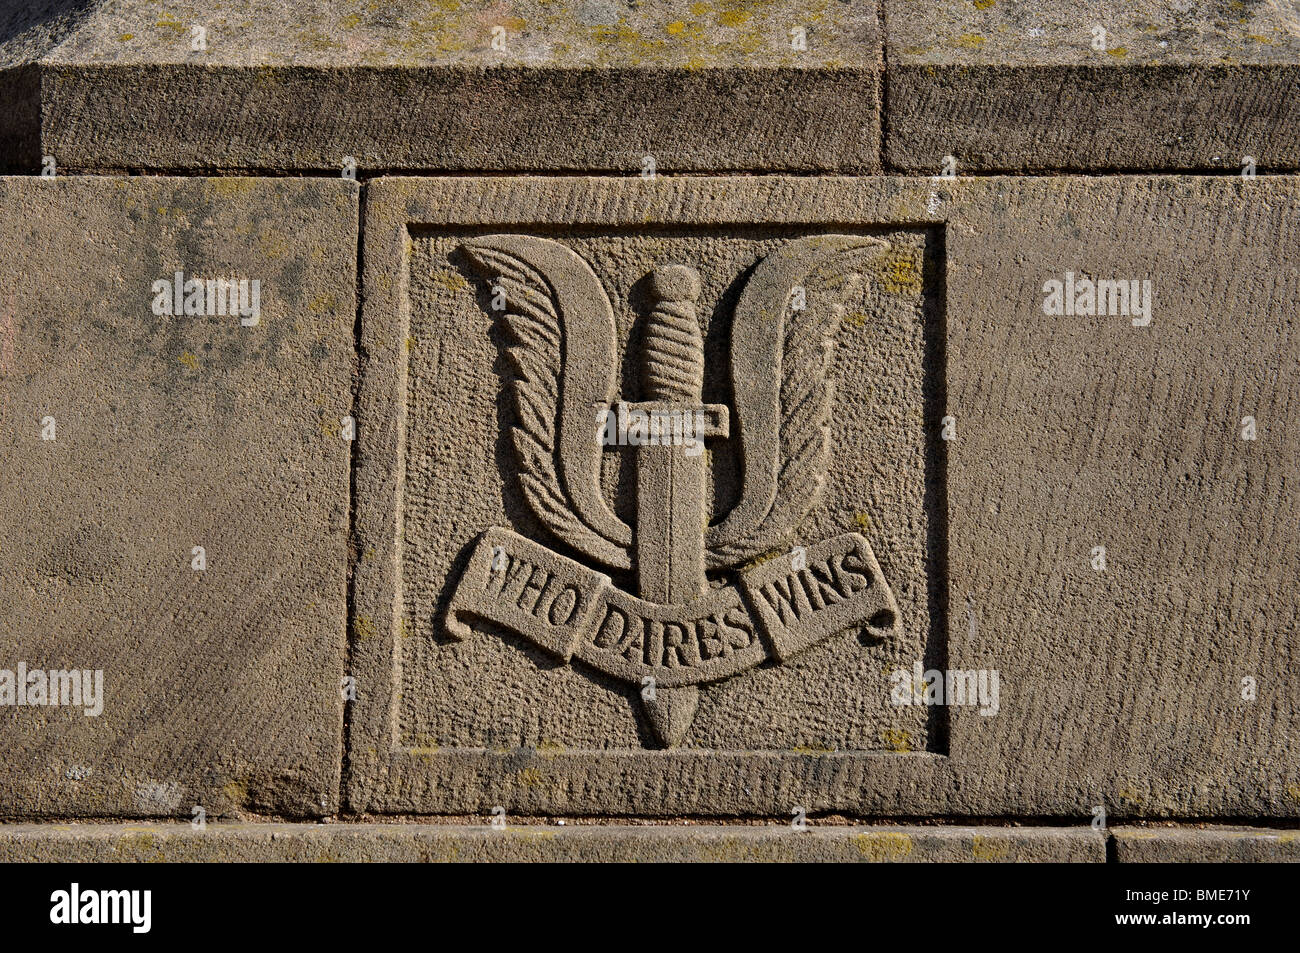 SAS crest on the War Memorial, Hereford, Herefordshire, England, UK - Stock Image